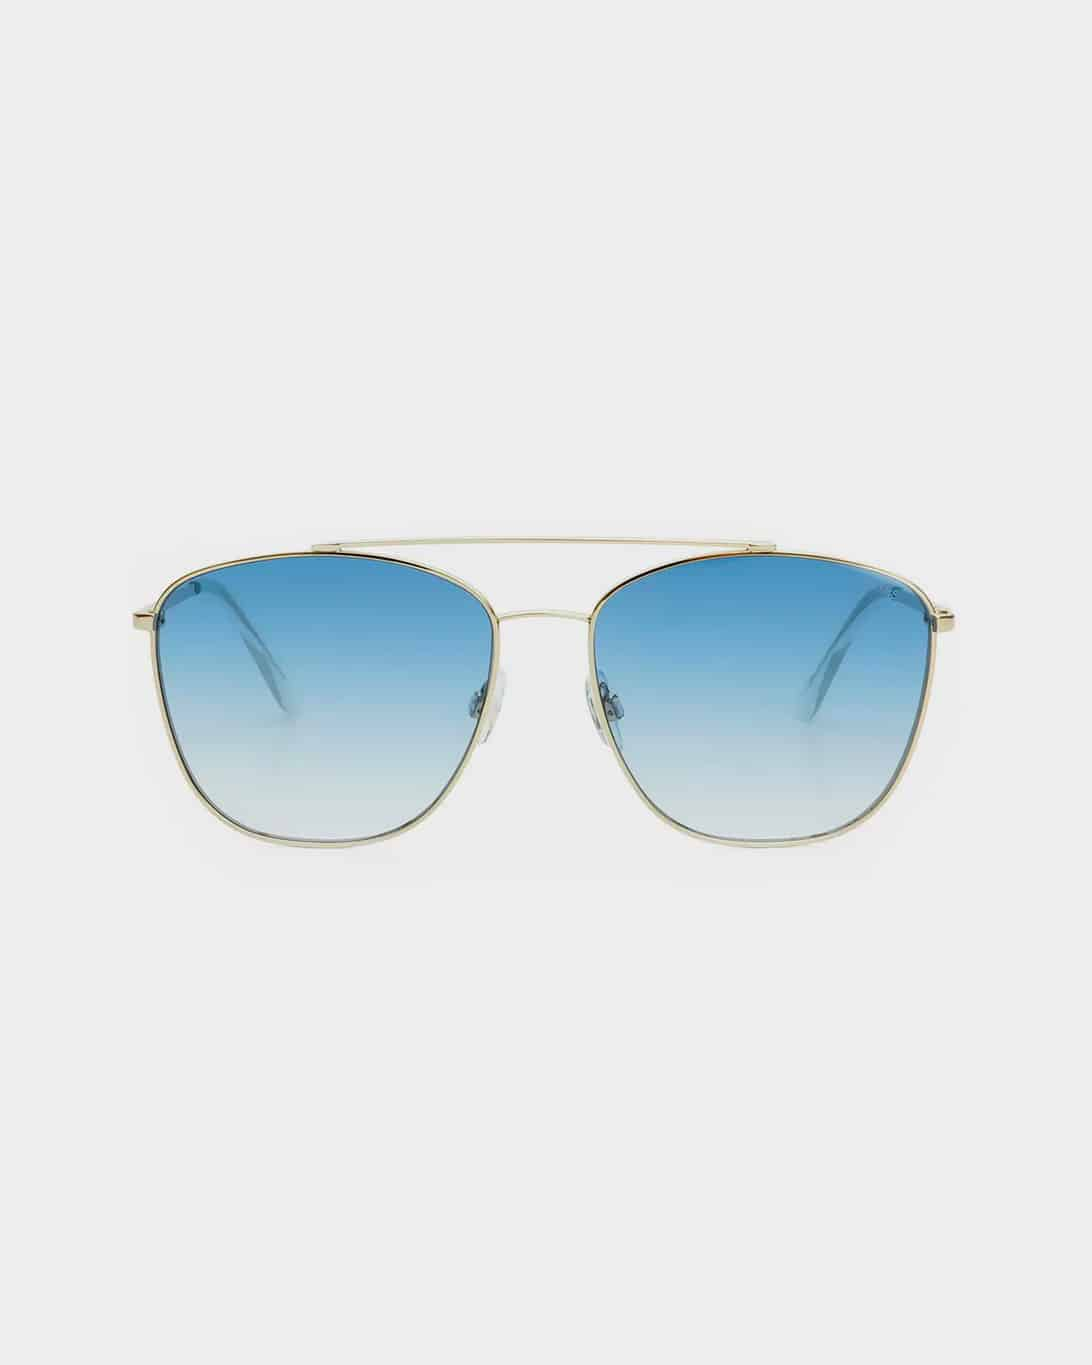 Gold framed sunglasses with blue lenses